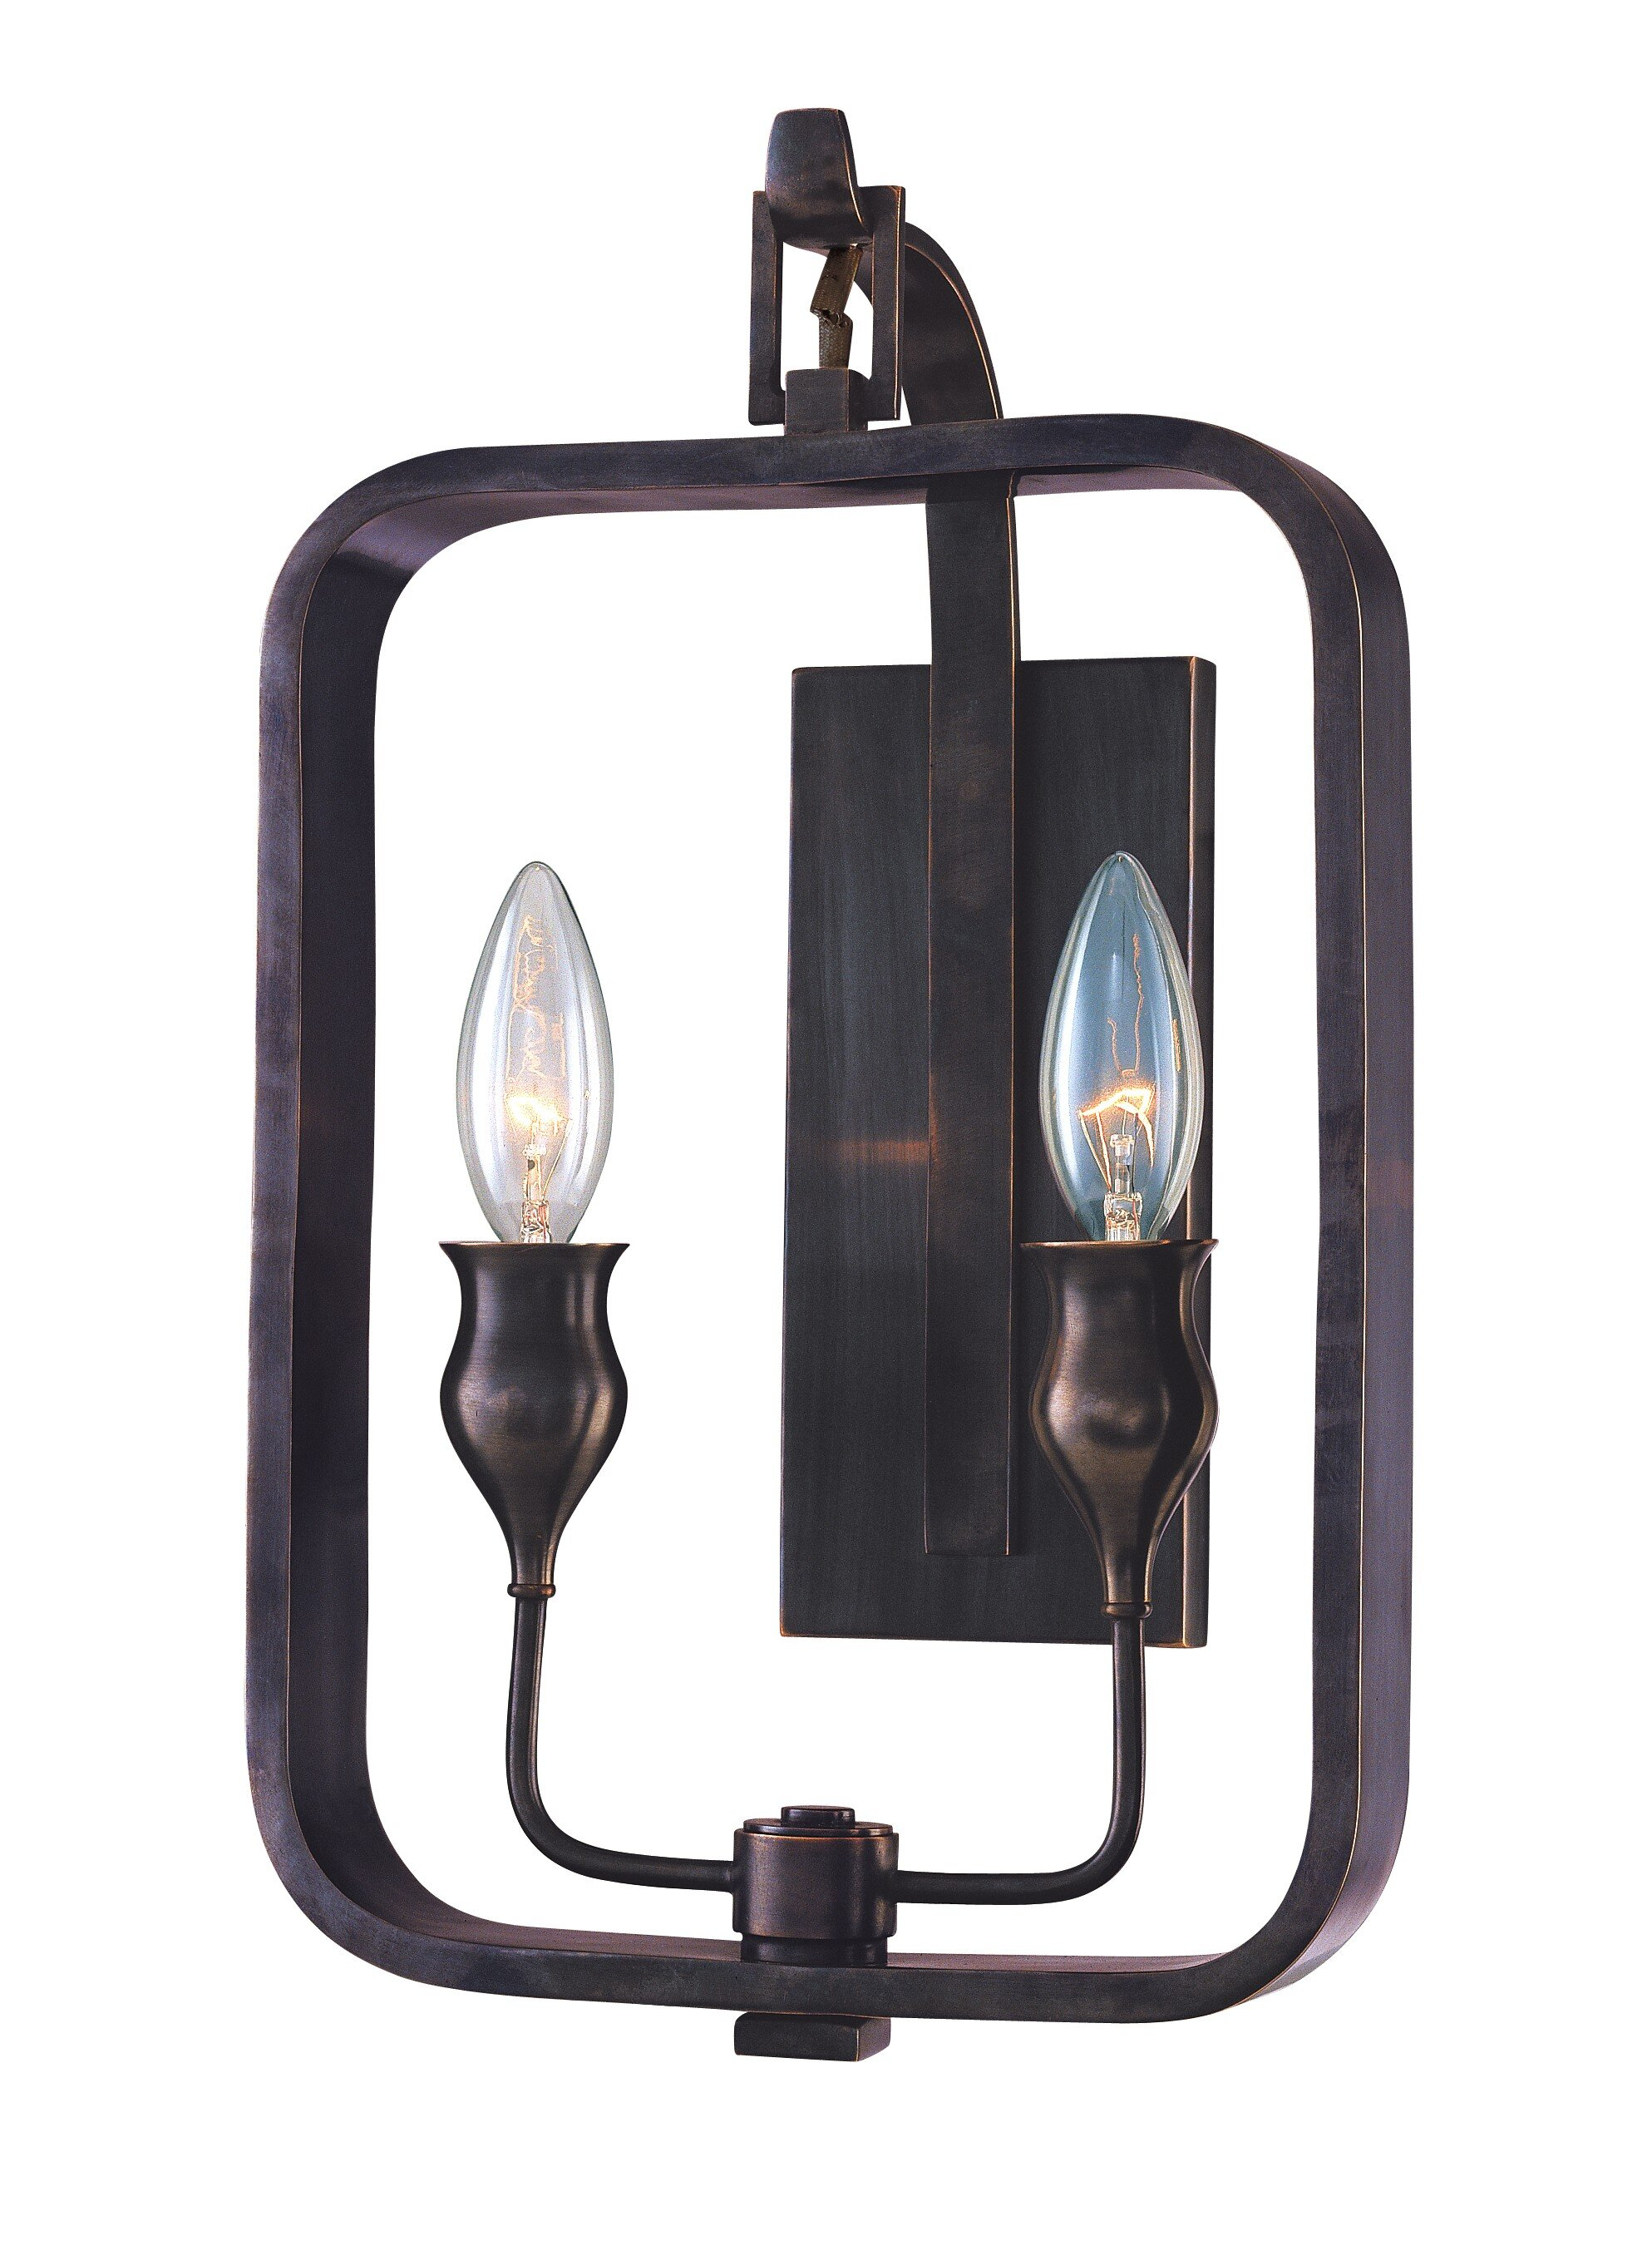 2 Brayden Studio Wall Sconces You Ll Love In 2021 Wayfair